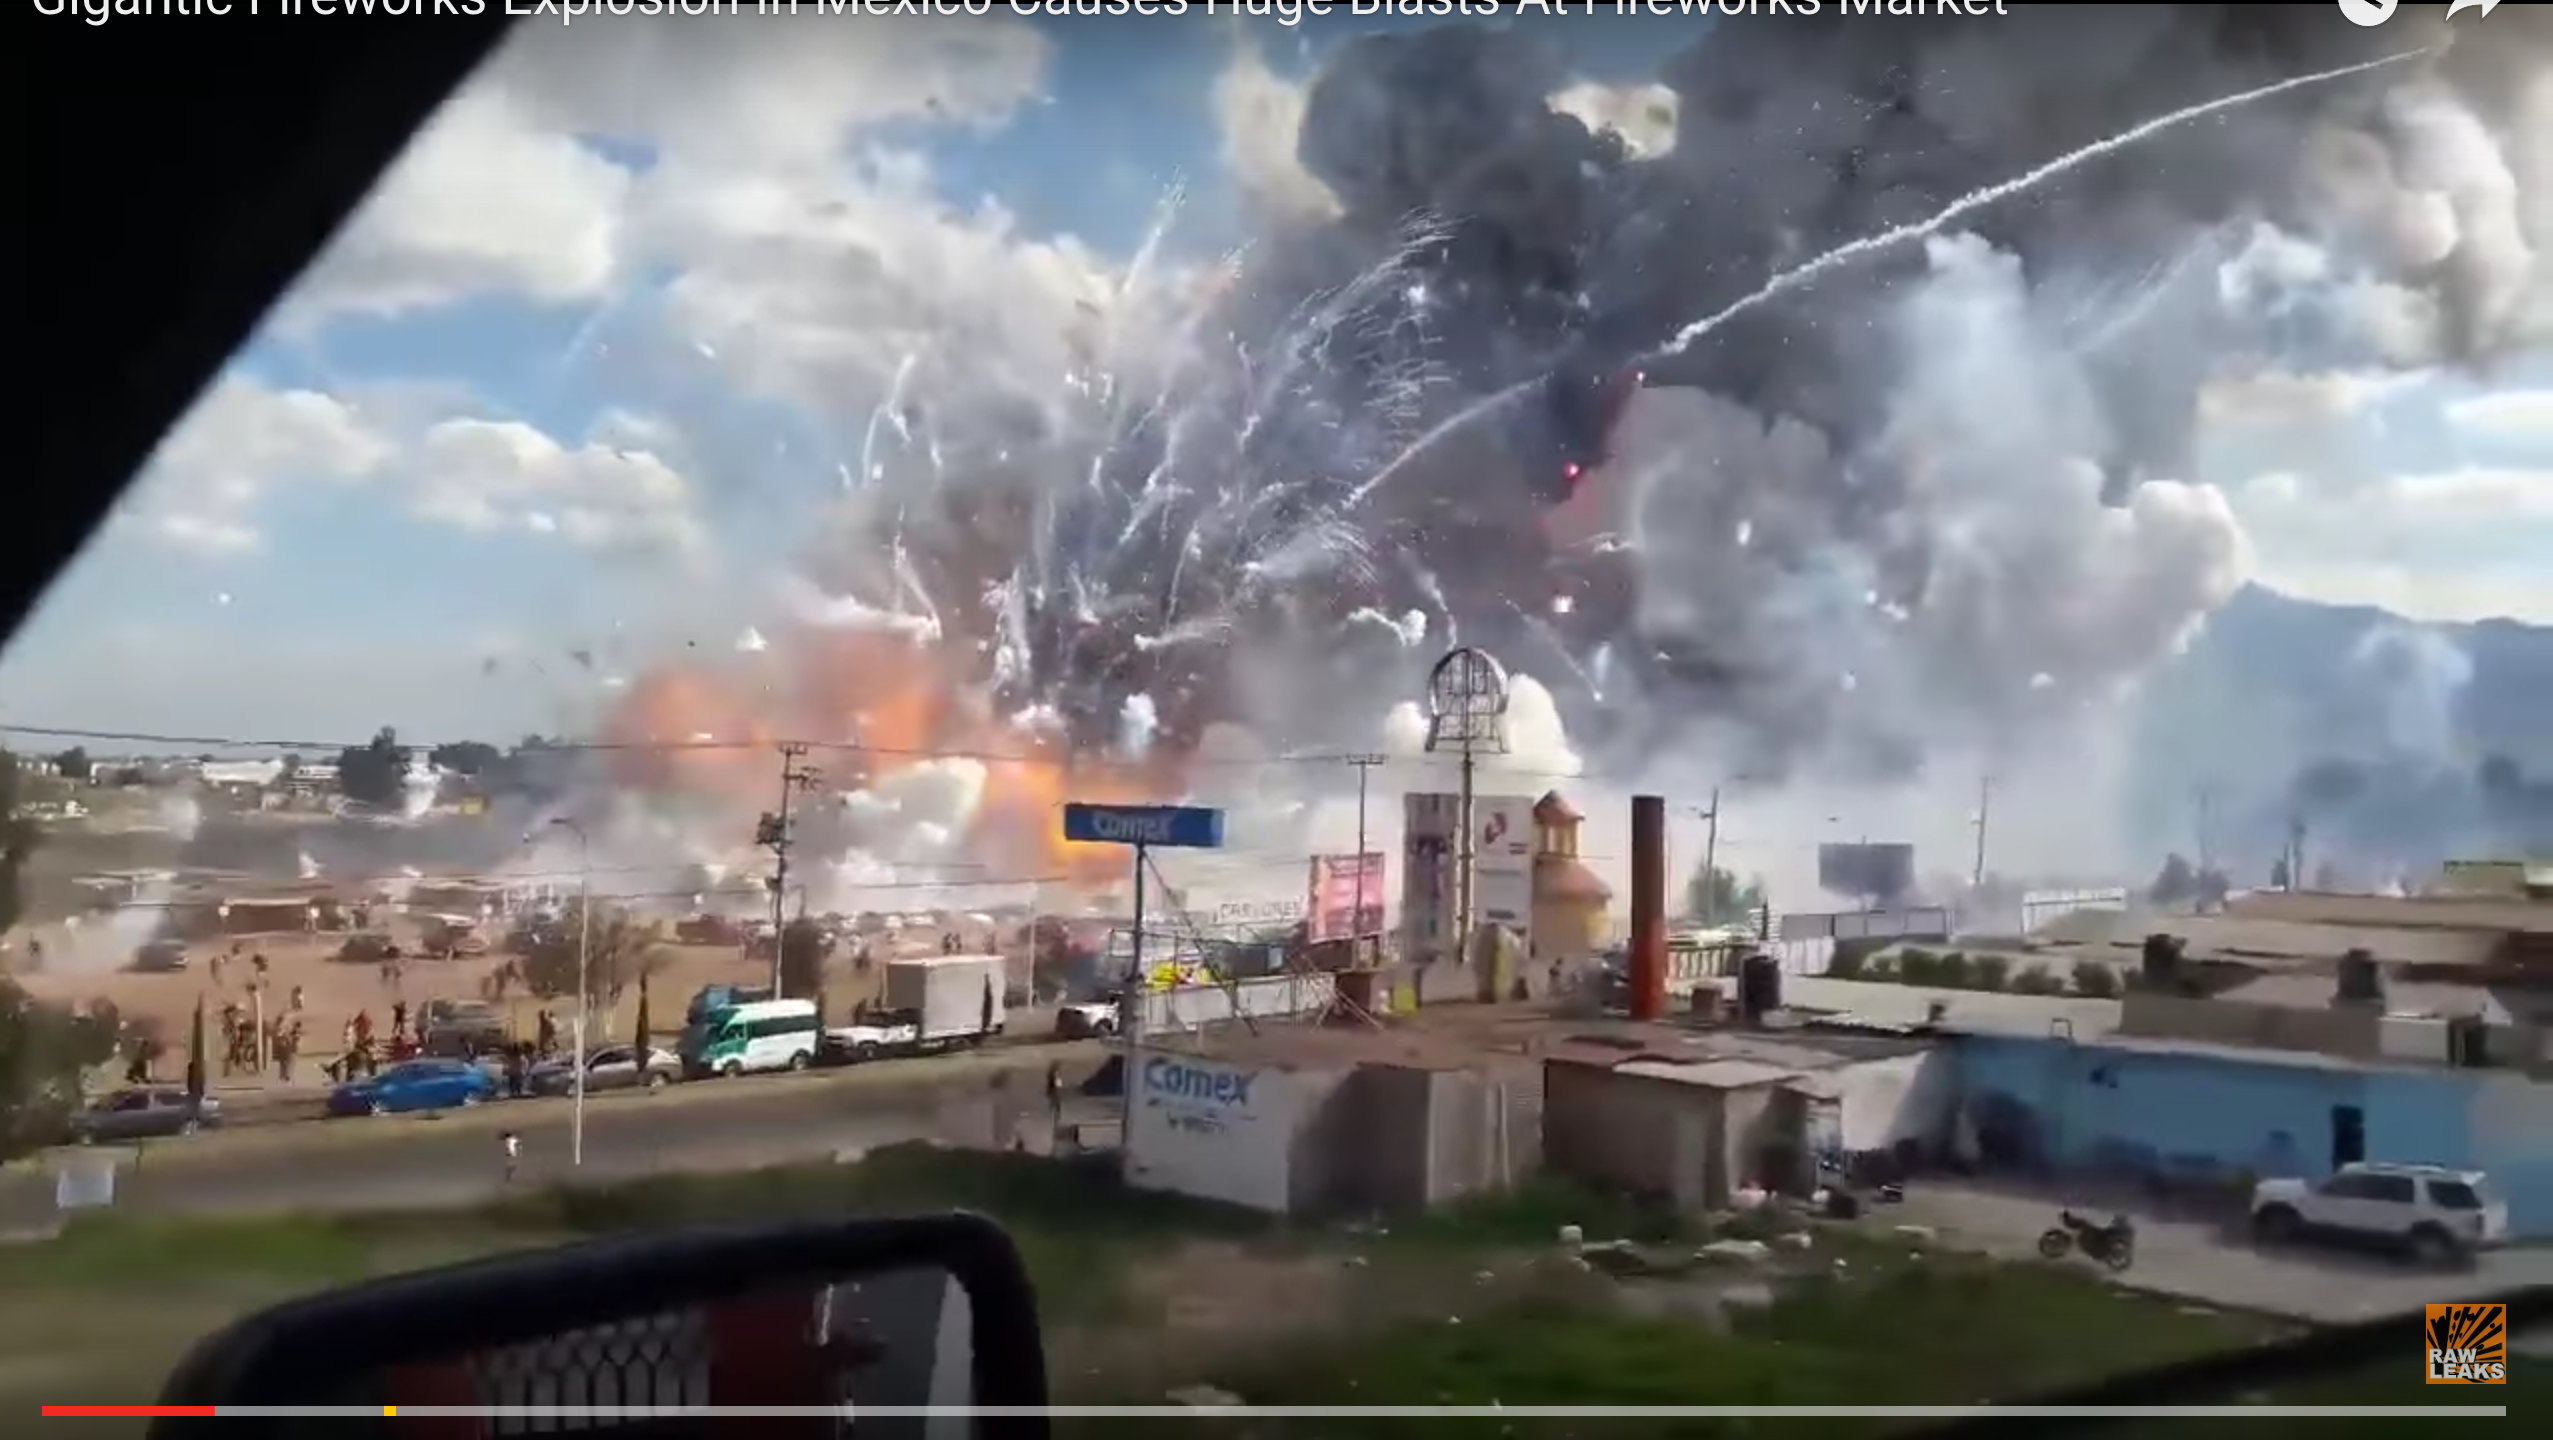 Explosions of the firework market in Tultepec, outskirts of Mexico City, Mexico.